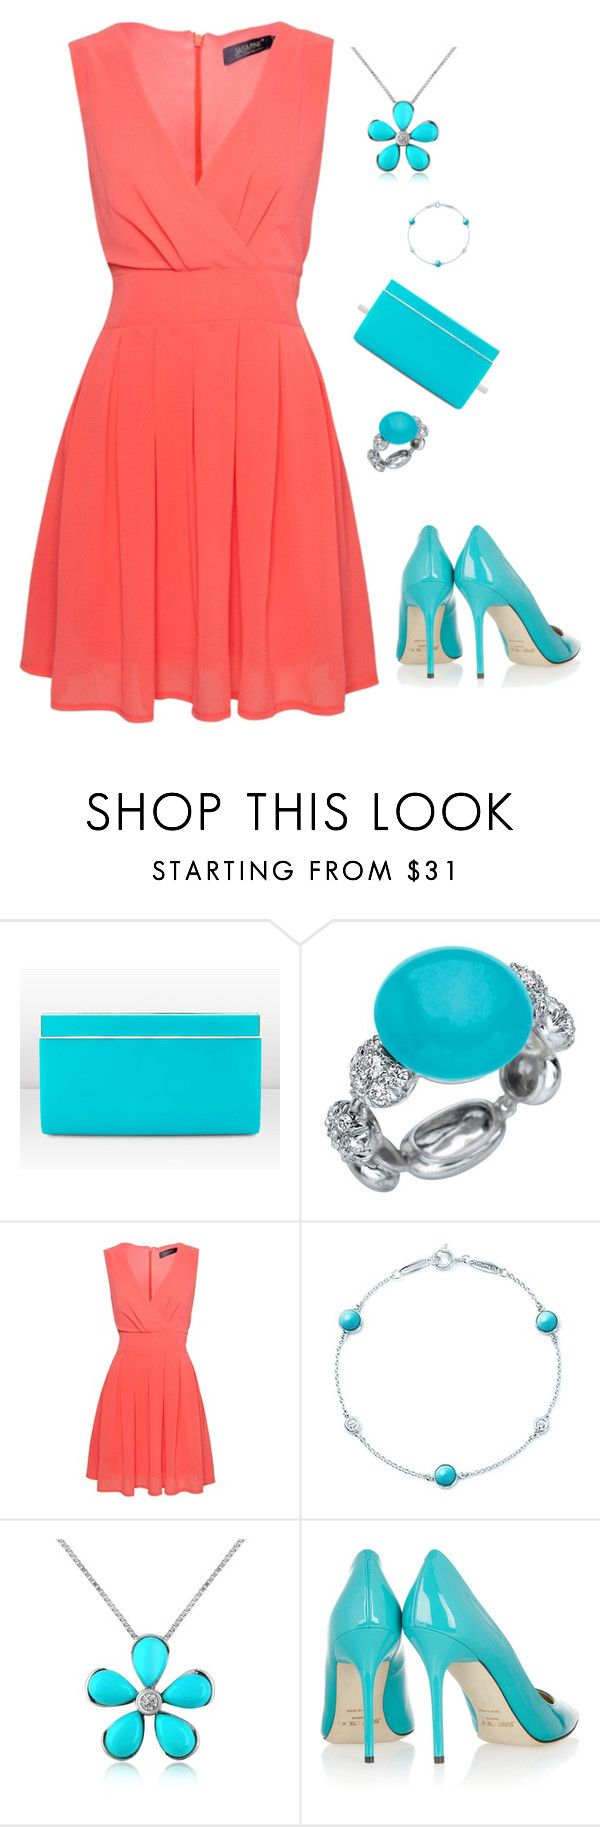 """Coral with Turquoise Accessories"" by shemomjojo ❤ liked on Polyvore featuring Jimmy Choo, Chantecler, Jasmine, Elsa Peretti and Del Gatto"